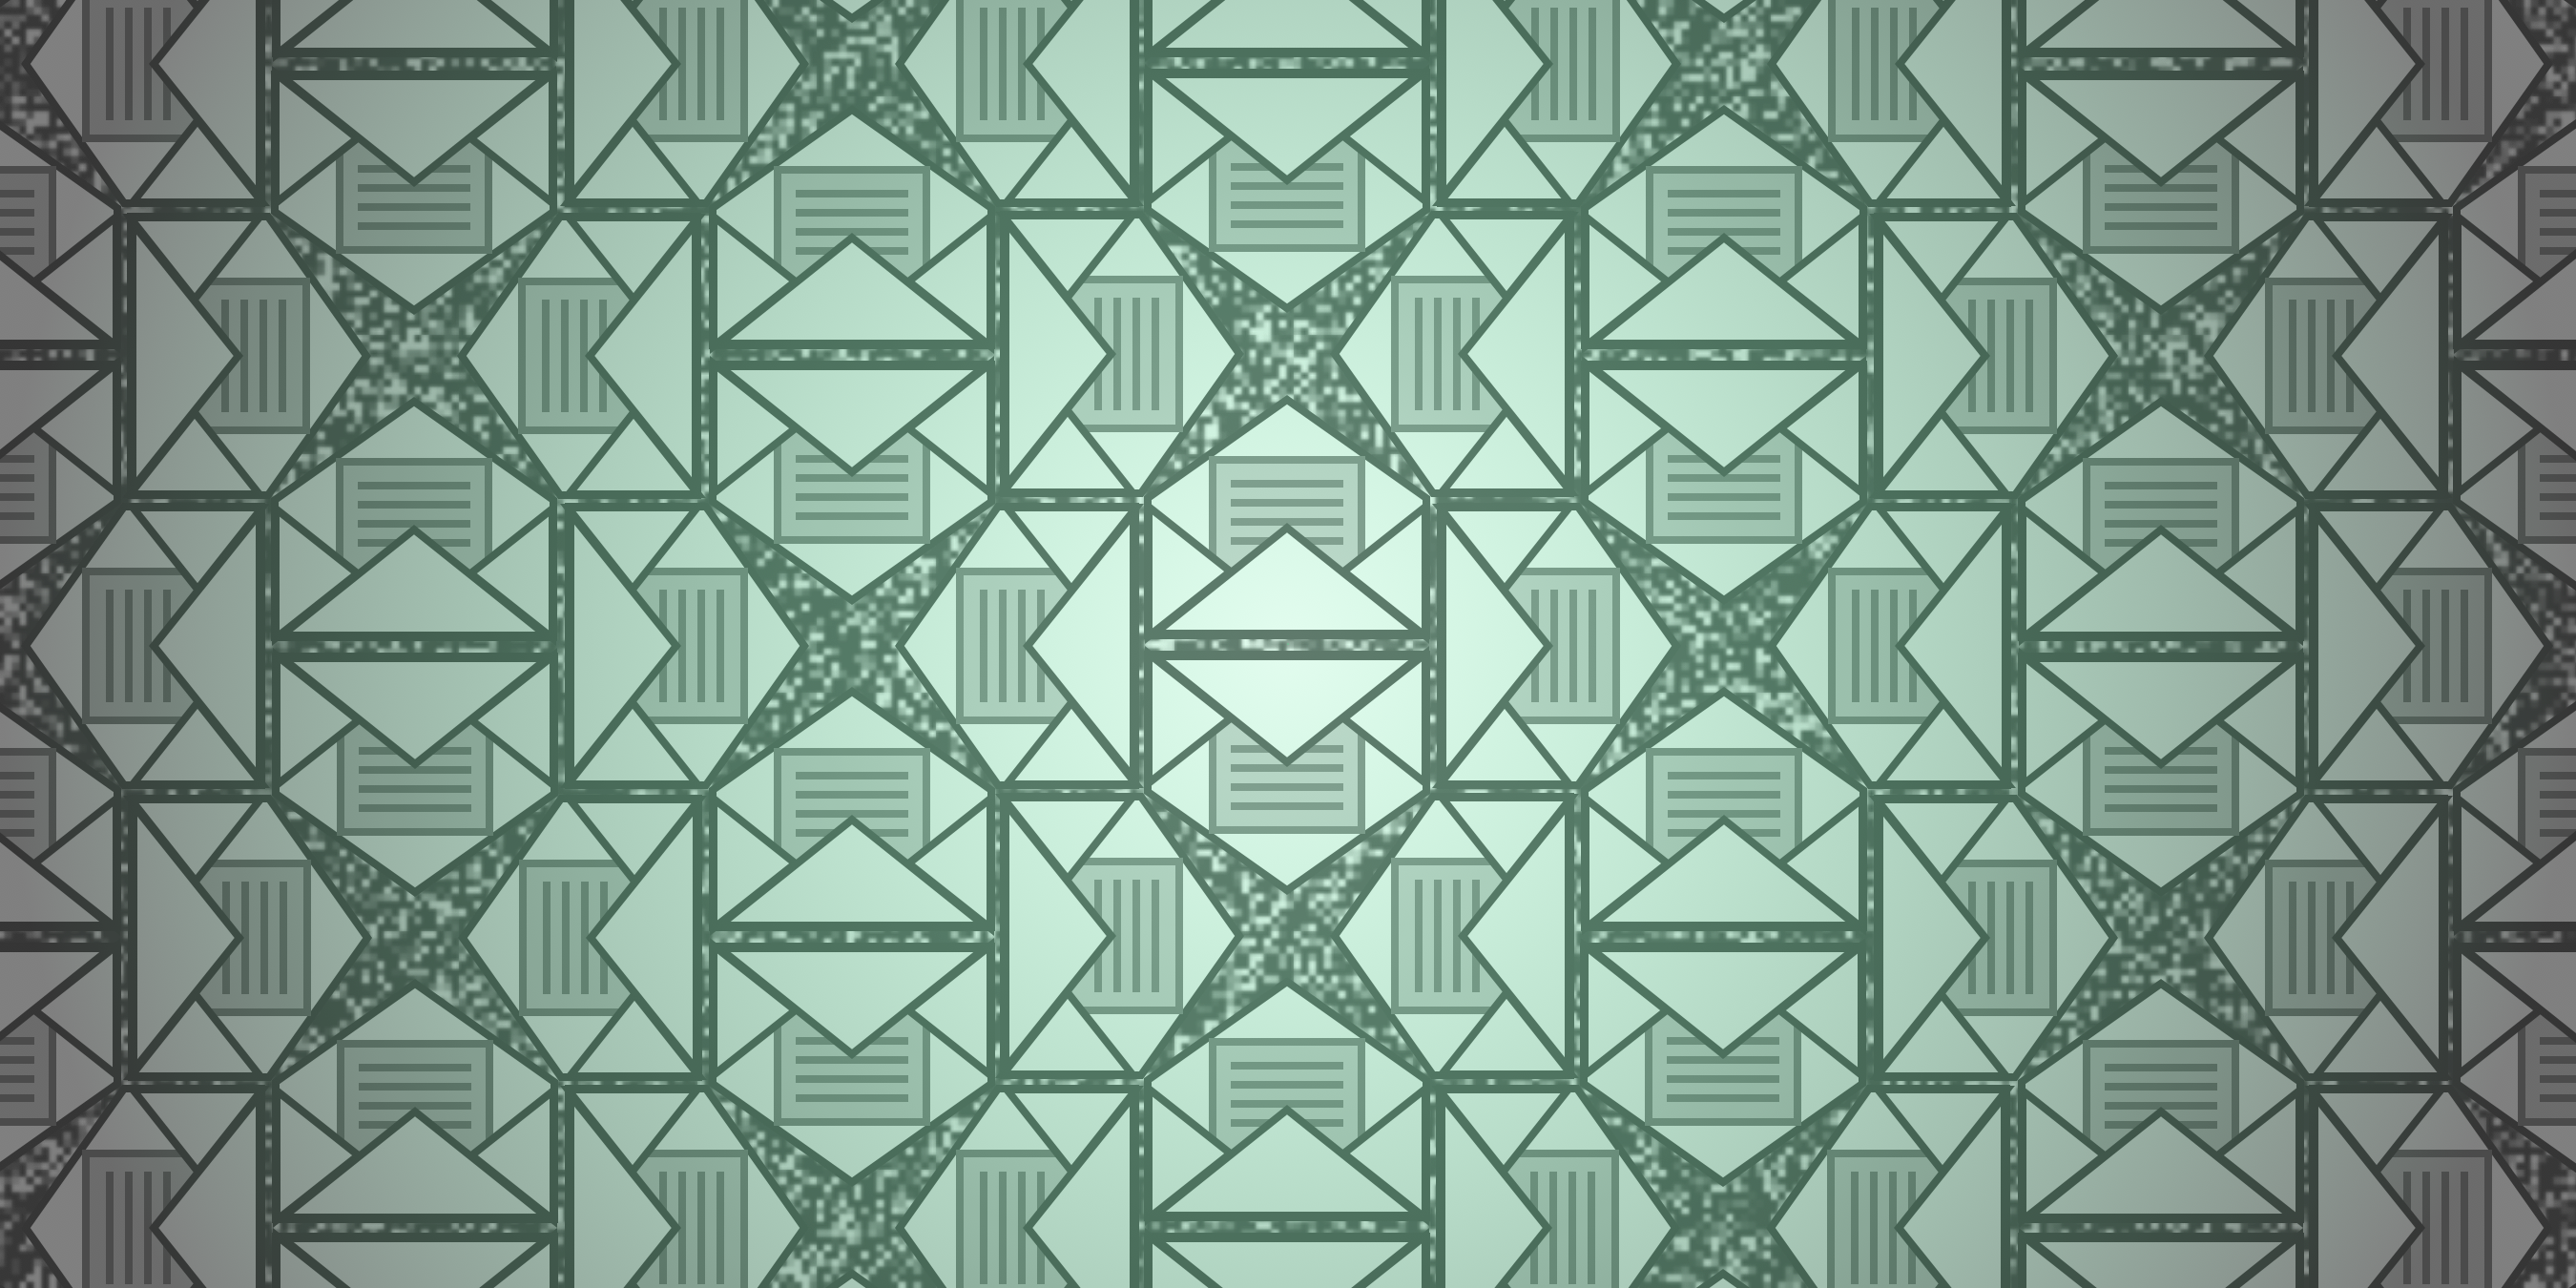 Header image showing pattern of mail envelope icons